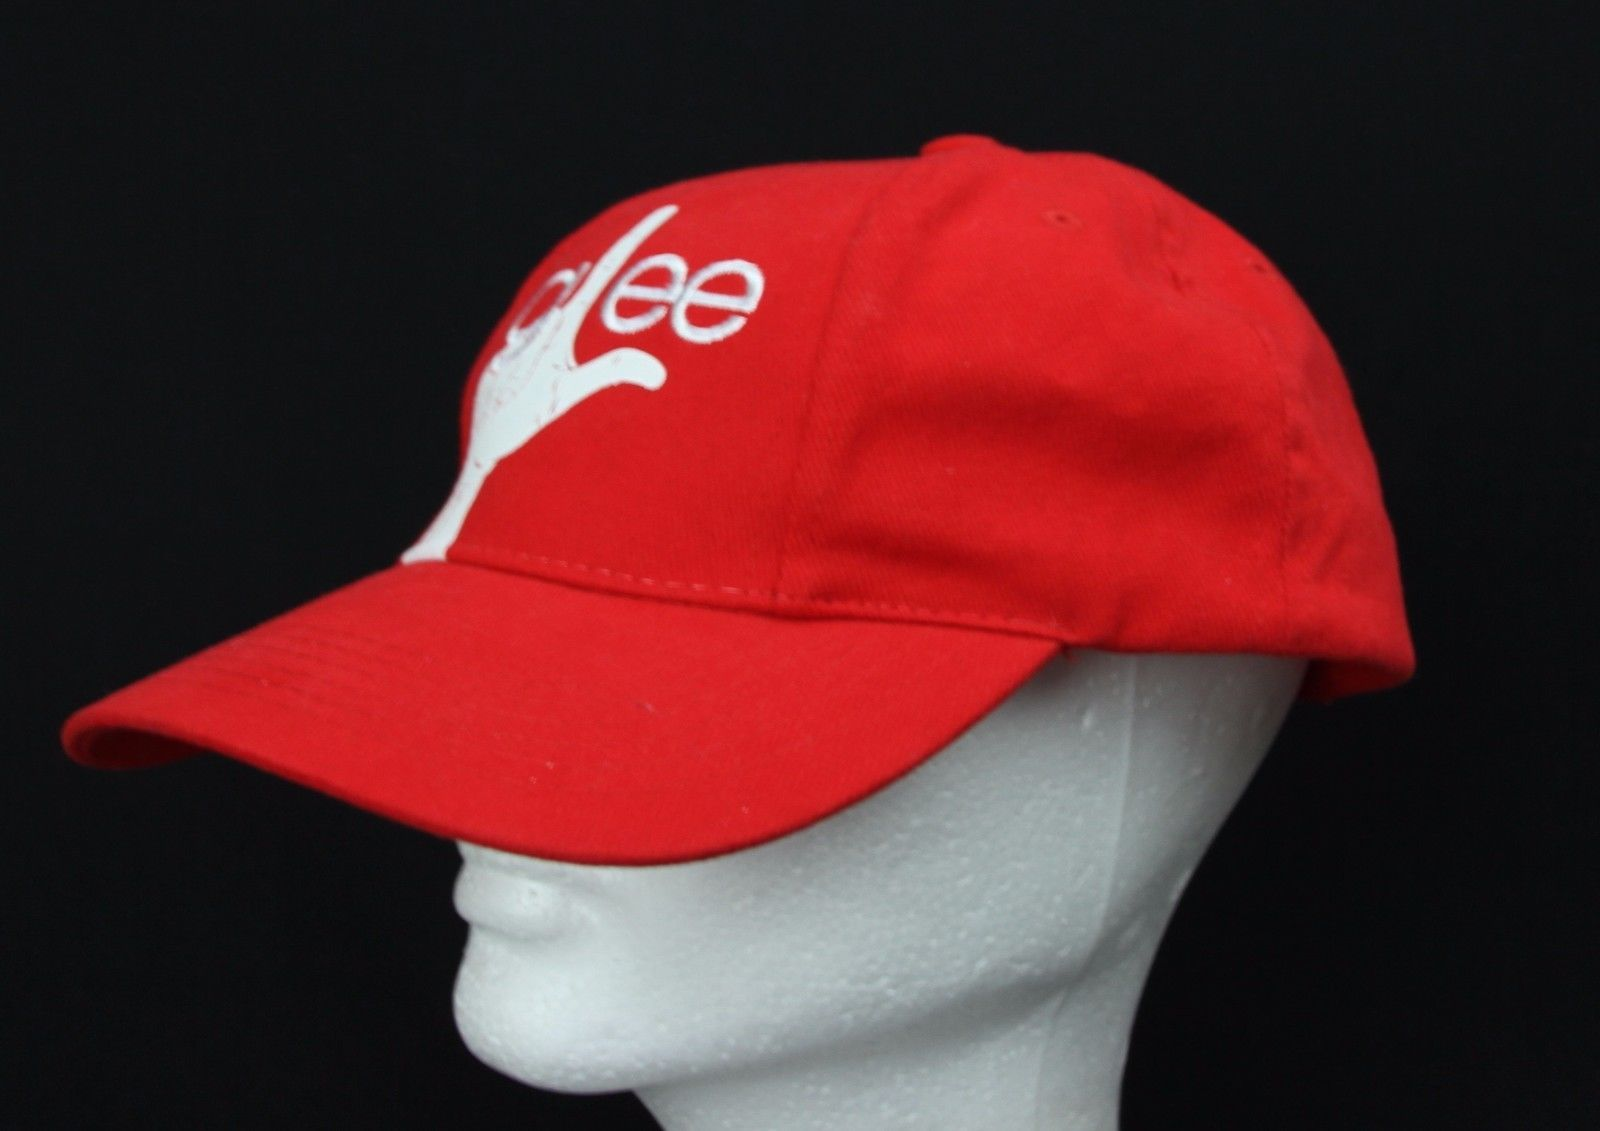 Glee Fox Musical Television Show Crew Member Baseball Hat Red Cotton Adjustable